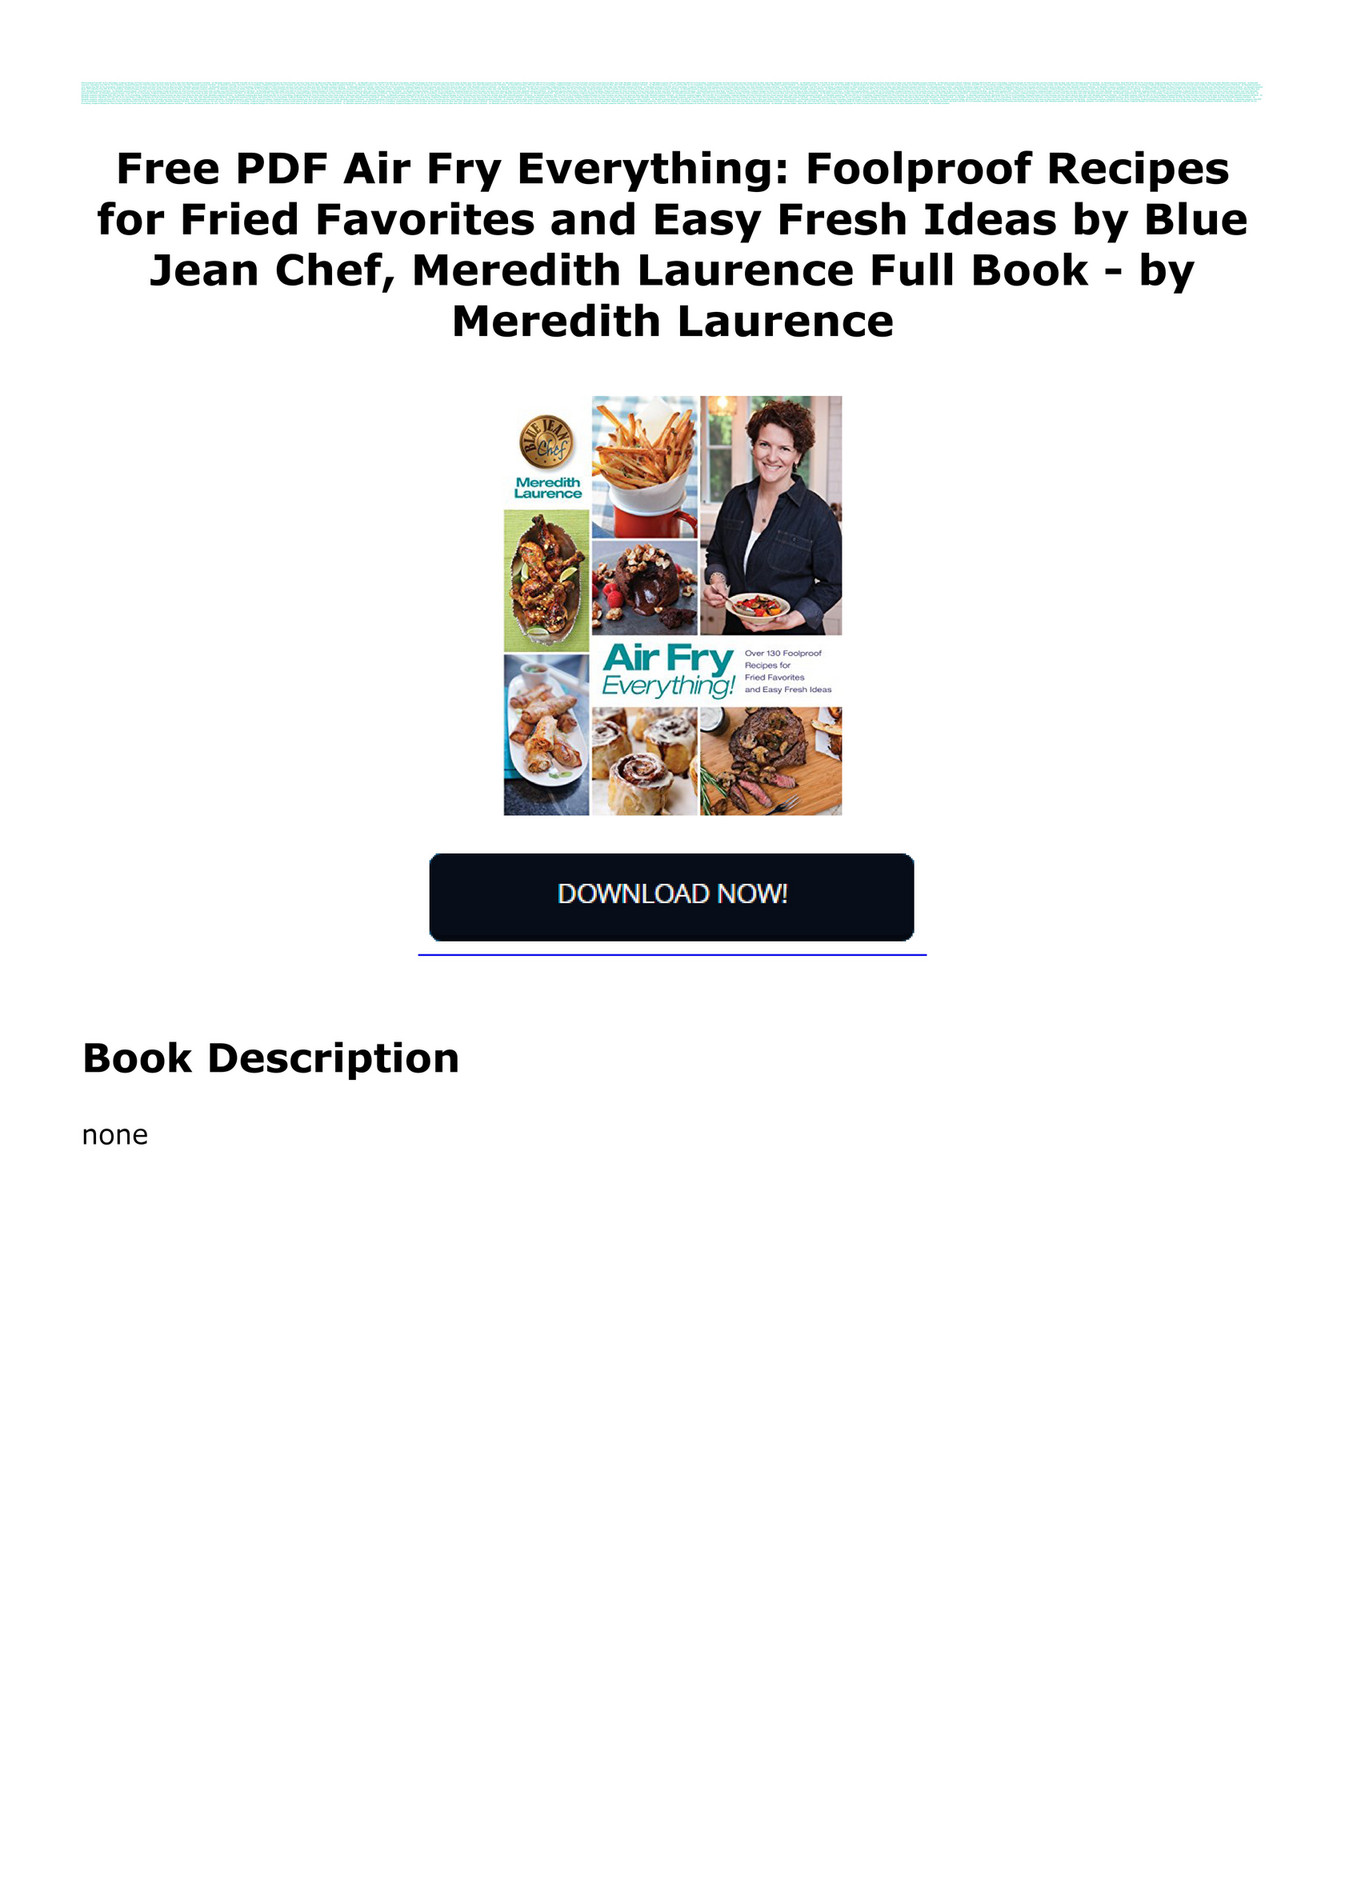 gignuhorzu3ed - Free PDF Air Fry Everything: Foolproof Recipes for Fried  Favorites and Easy Fresh Ideas by Blue Jean Chef, Meredith Laurence Full  Book - by ...